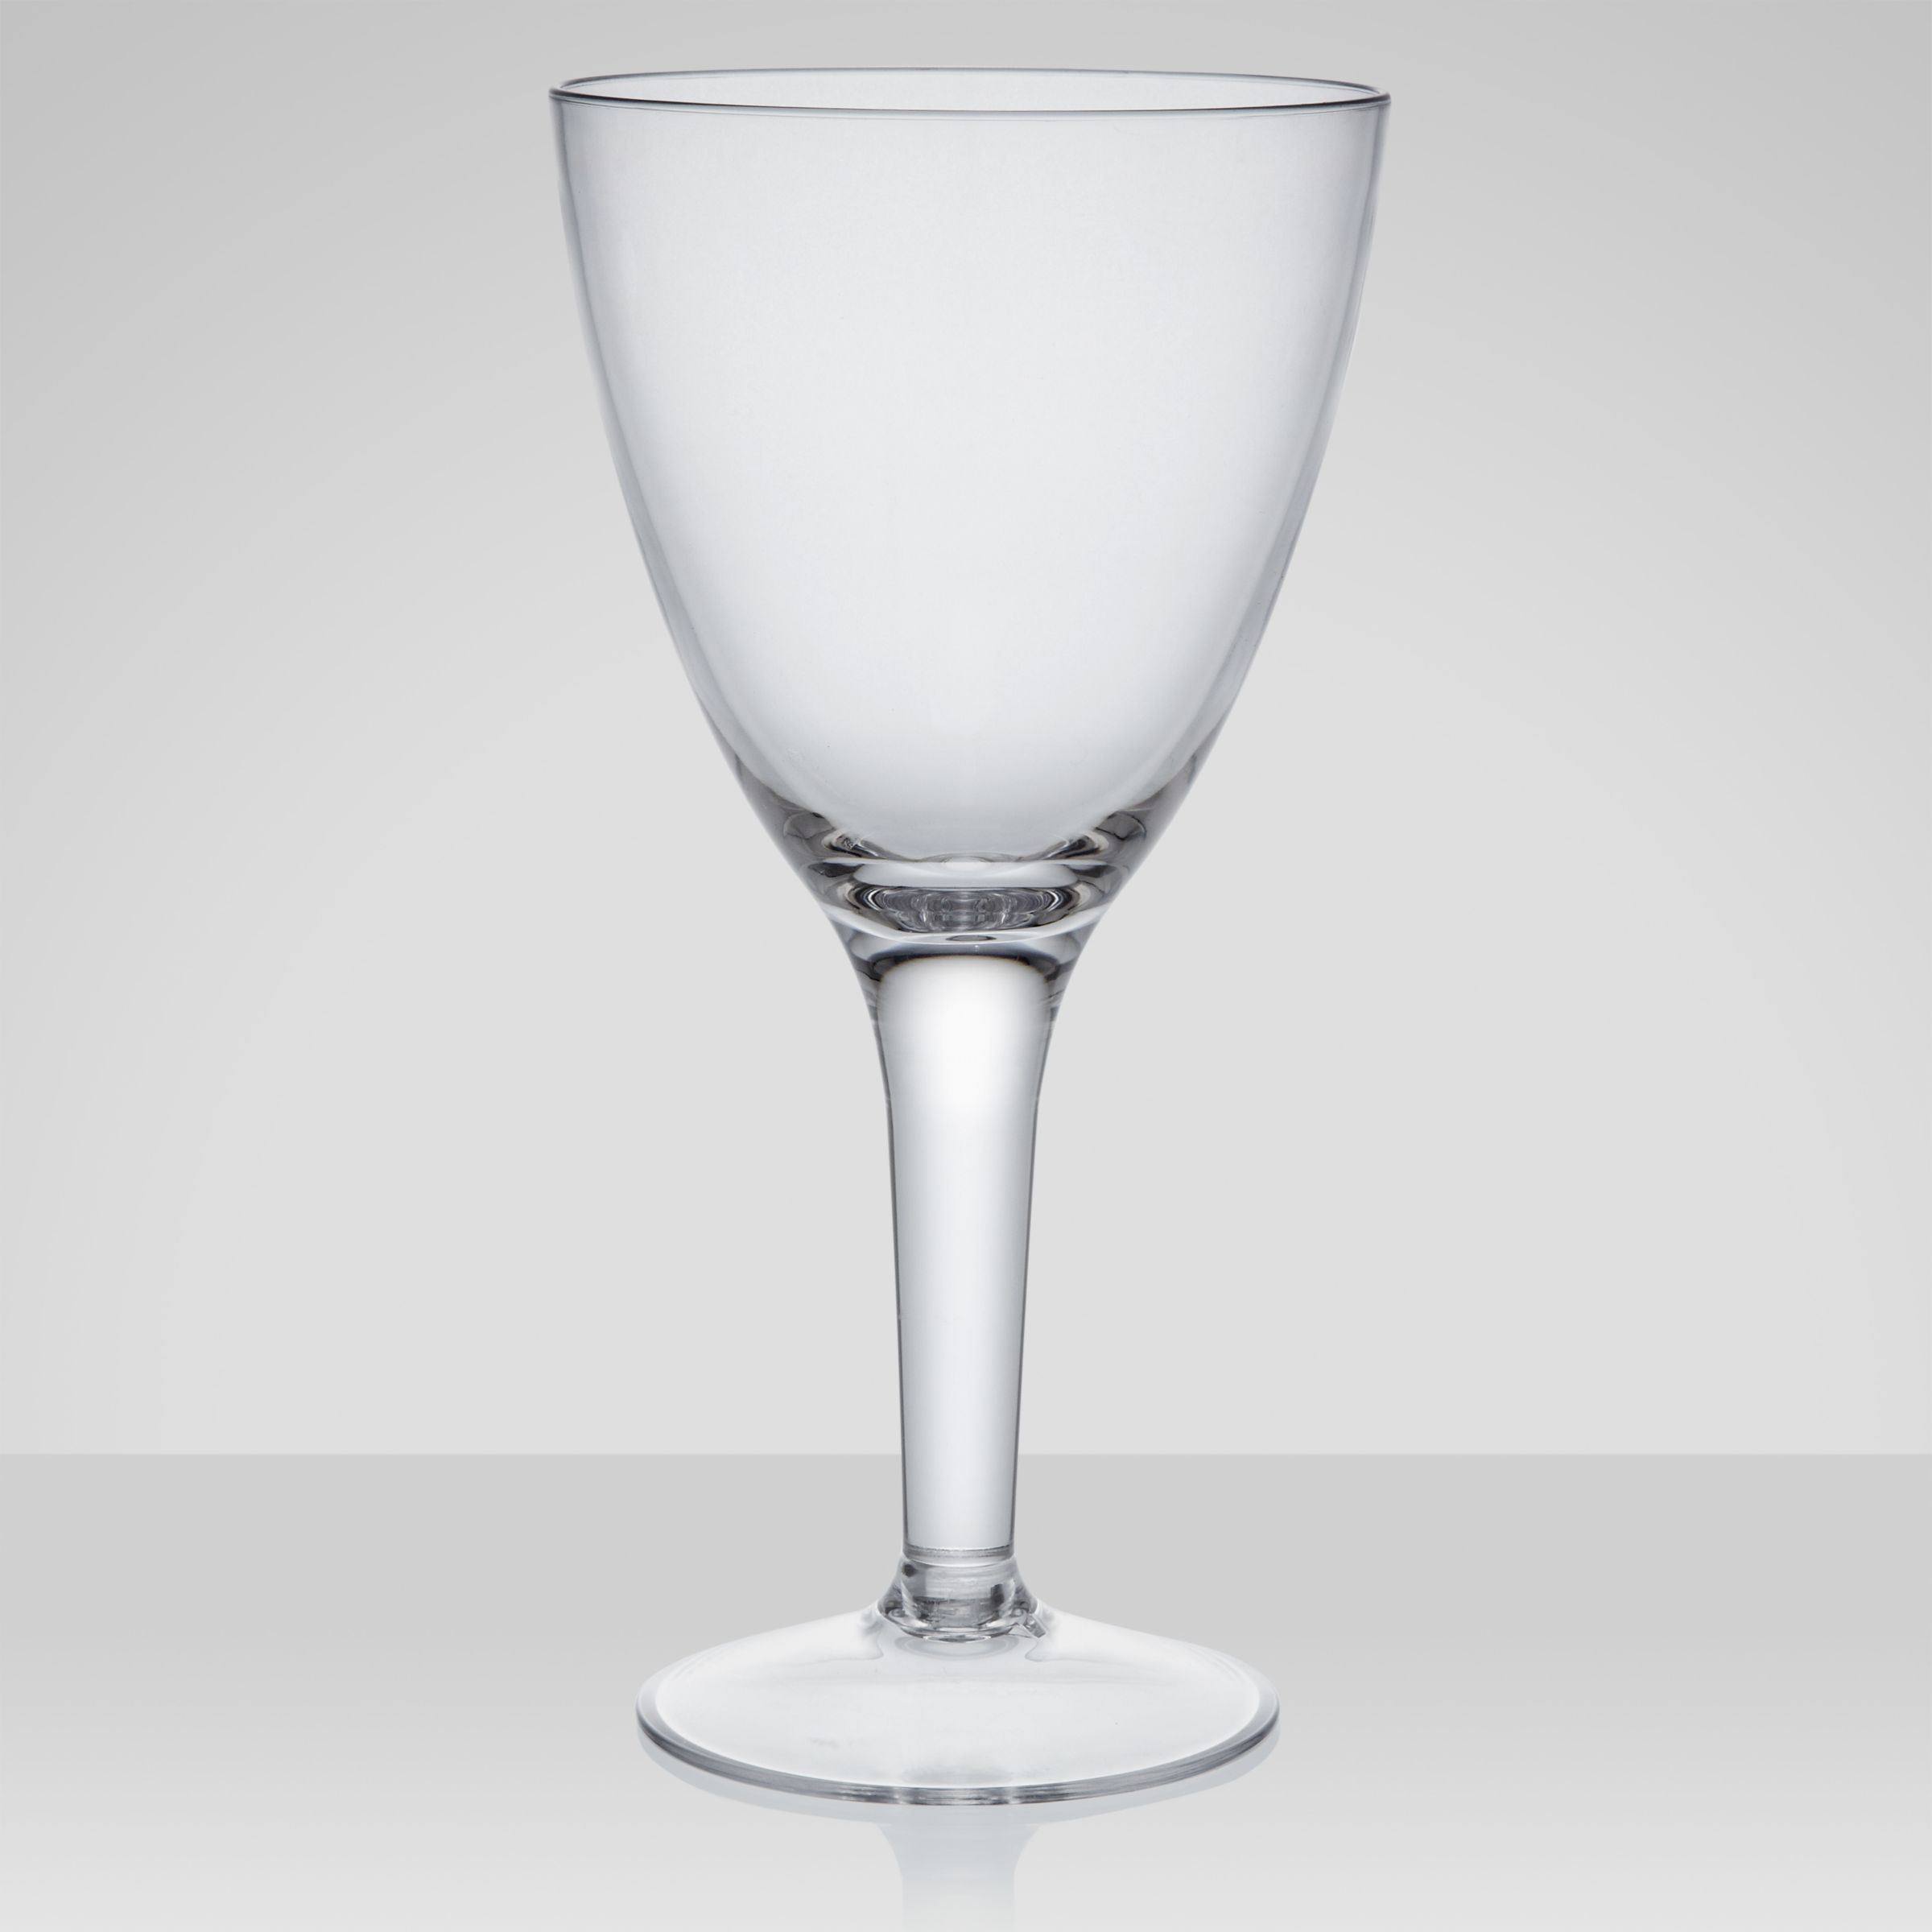 Kitchen Craft Coolmovers Large Wine Glass, 420ml